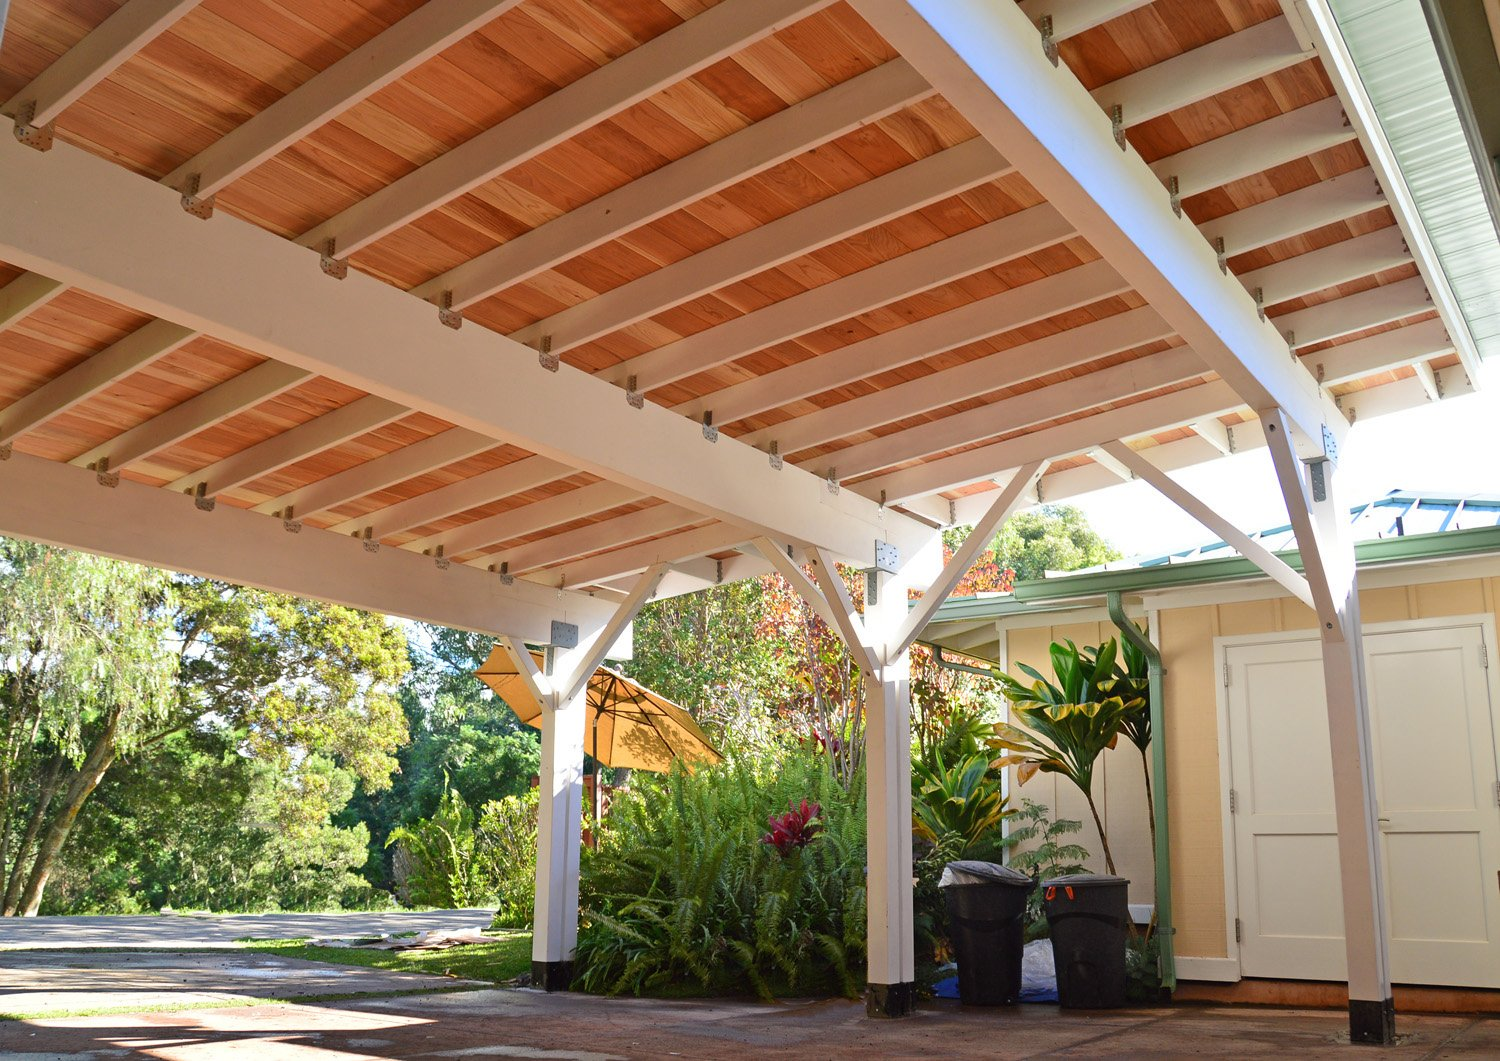 Carport Pavilion in California Redwood. Unfinished ceiling by custom request.